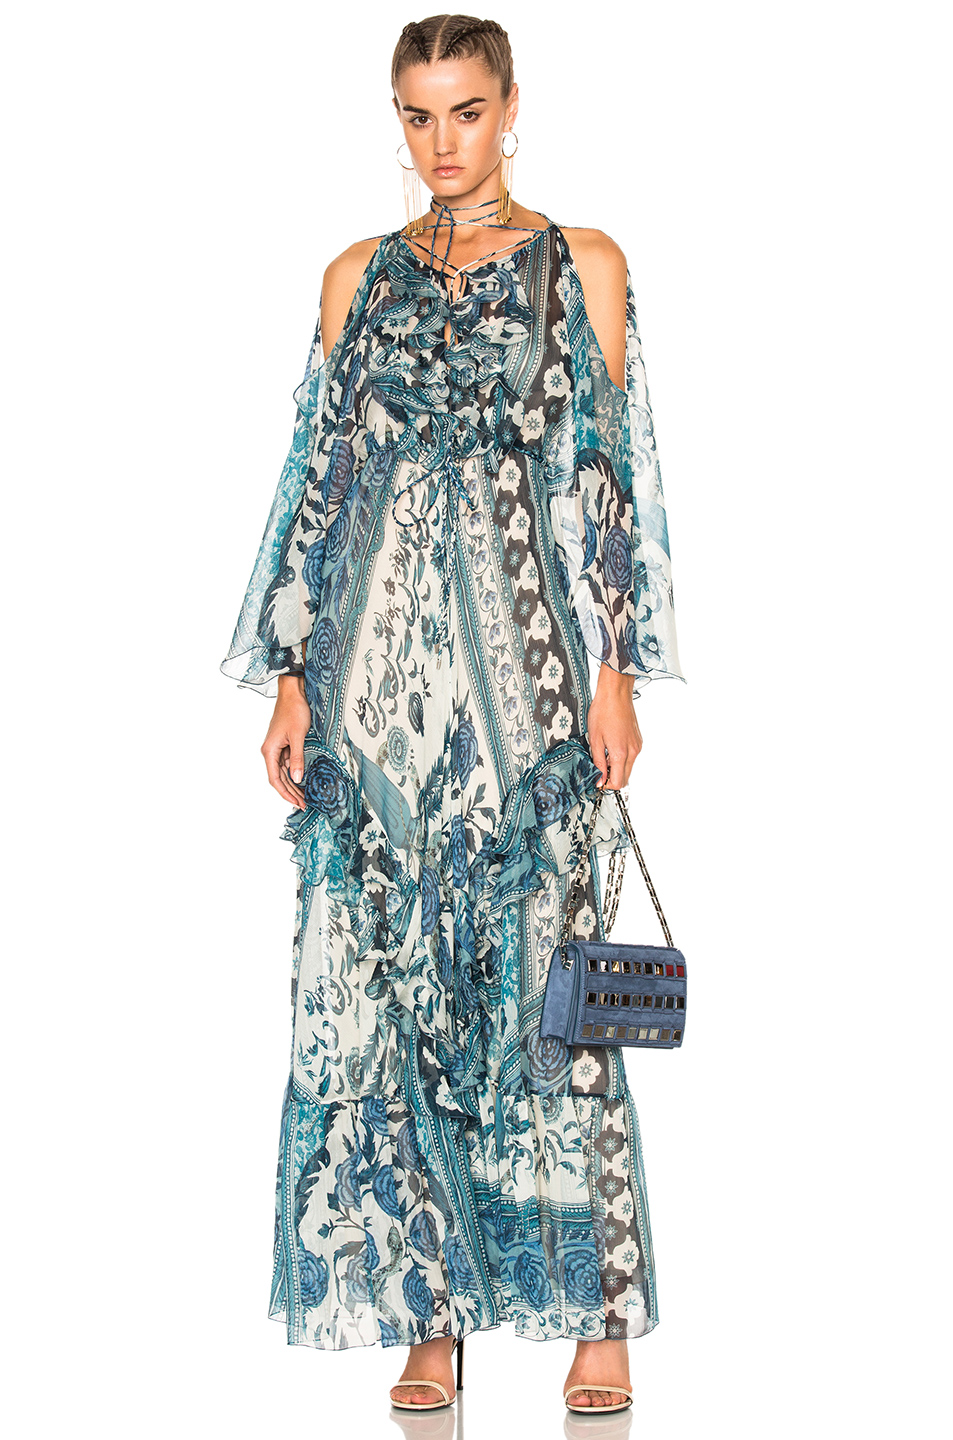 Roberto Cavalli Asymmetrical Dress in Blue,Floral